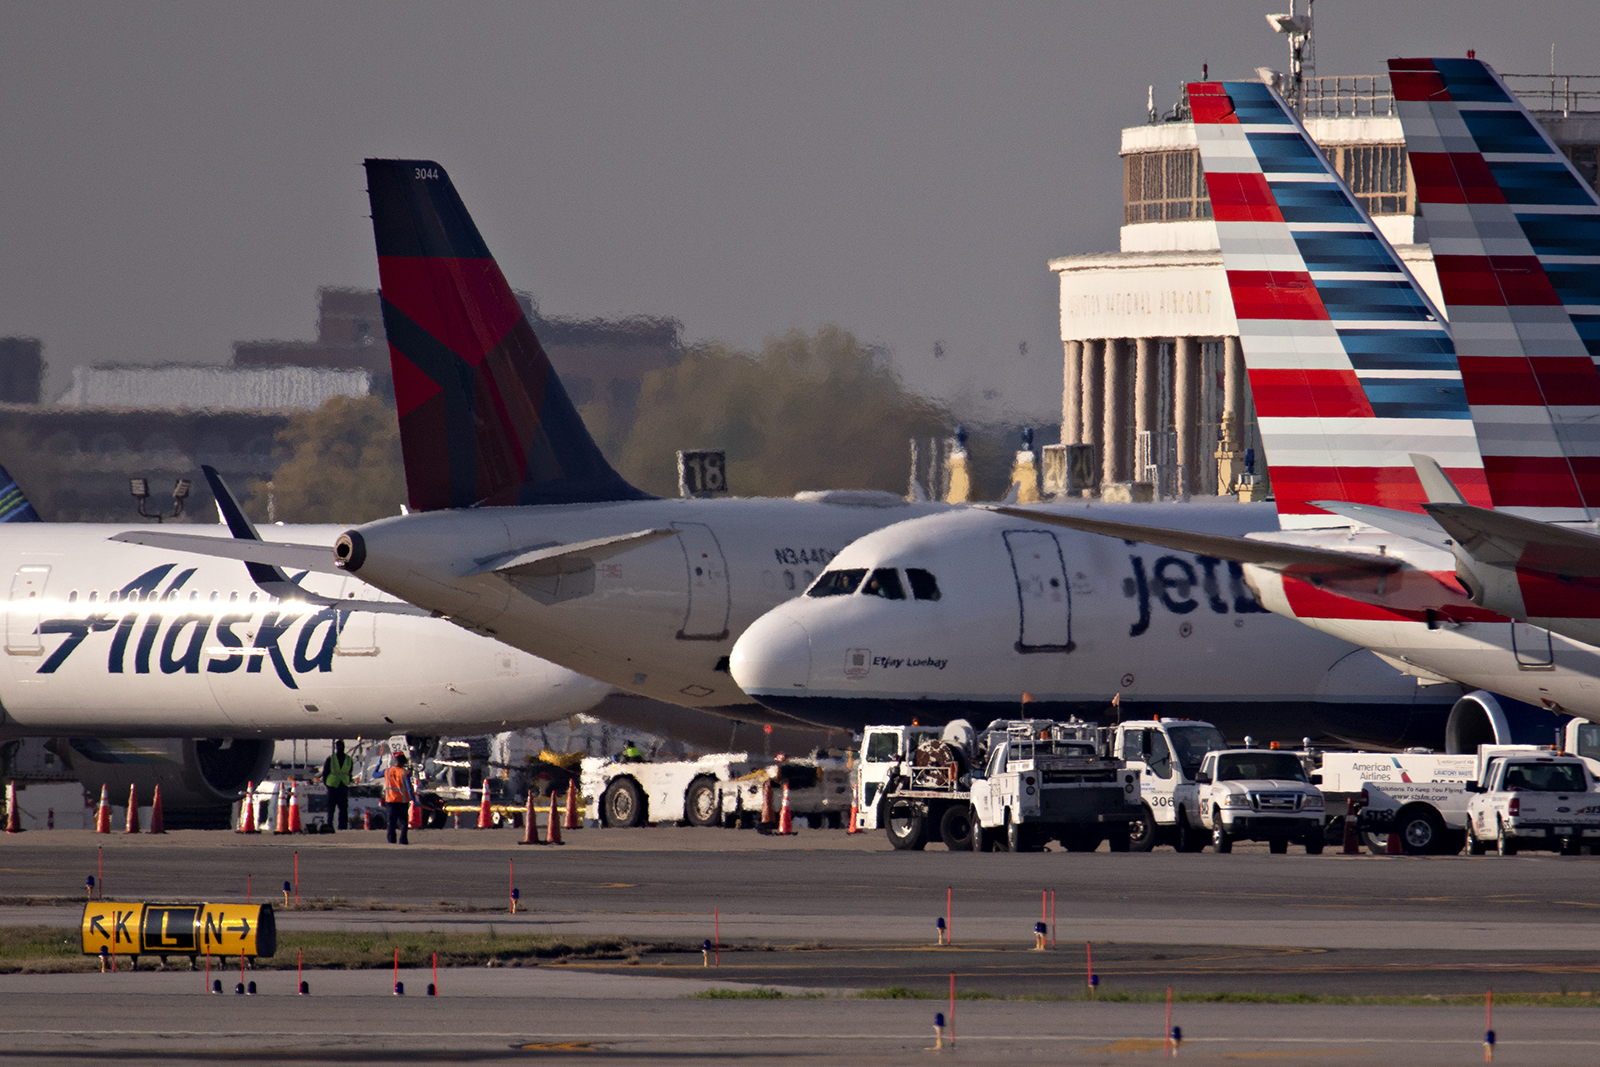 A JetBlue Airways Corp. plane taxis next to American Airlines Group Inc., Delta Air Lines Inc., and Alaska Airlines Inc. aircraft at Reagan National Airport (DCA) in Arlington, Virginia, on Monday, April 6.